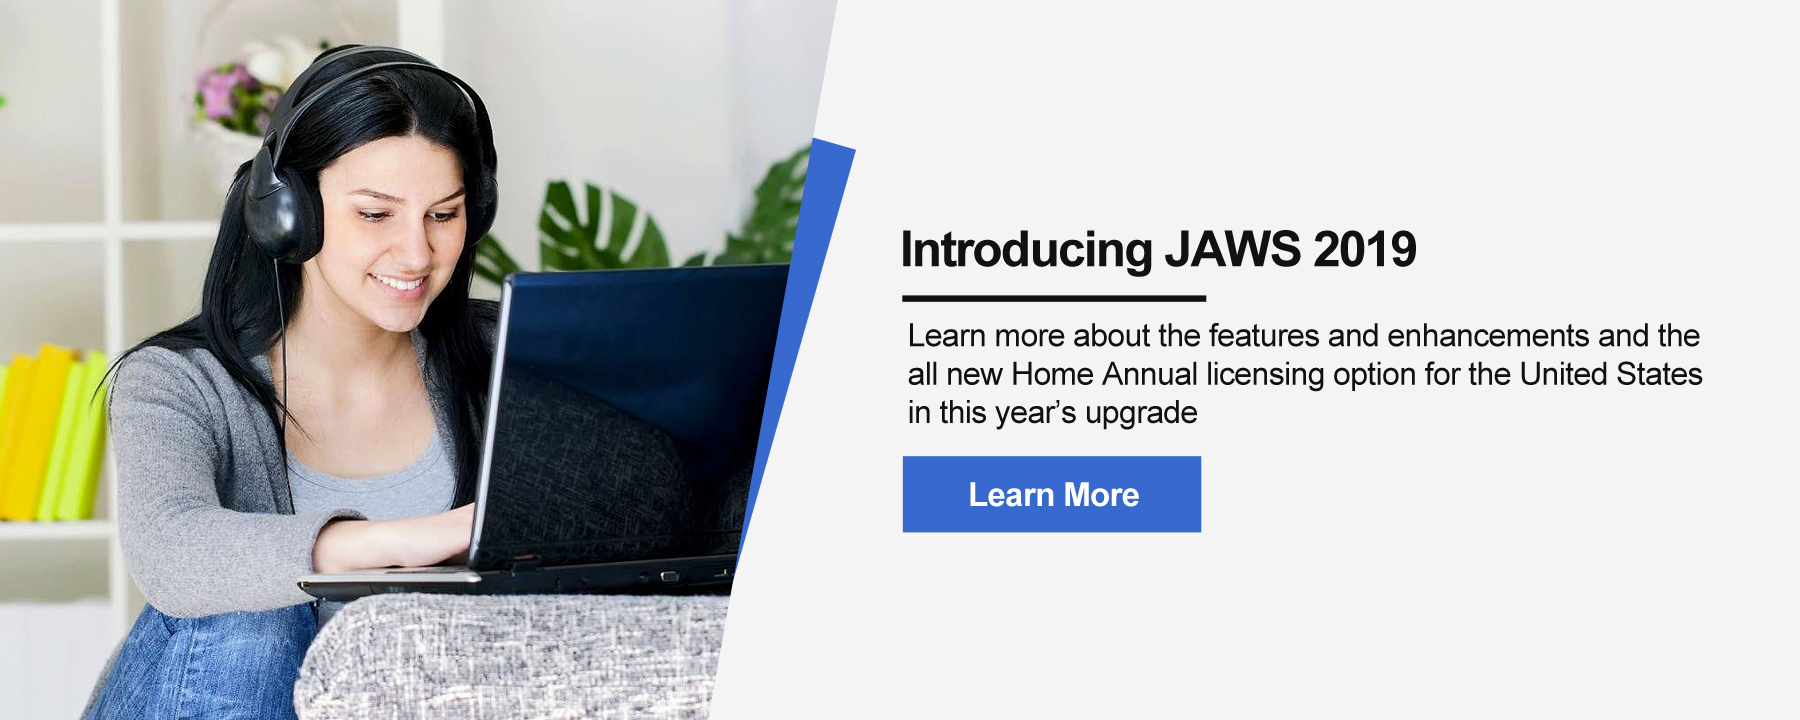 Introducing JAWS 2019. Learn more about the features and enhancements and the all new Home Annual licensing option for the United States in this year's upgrade.